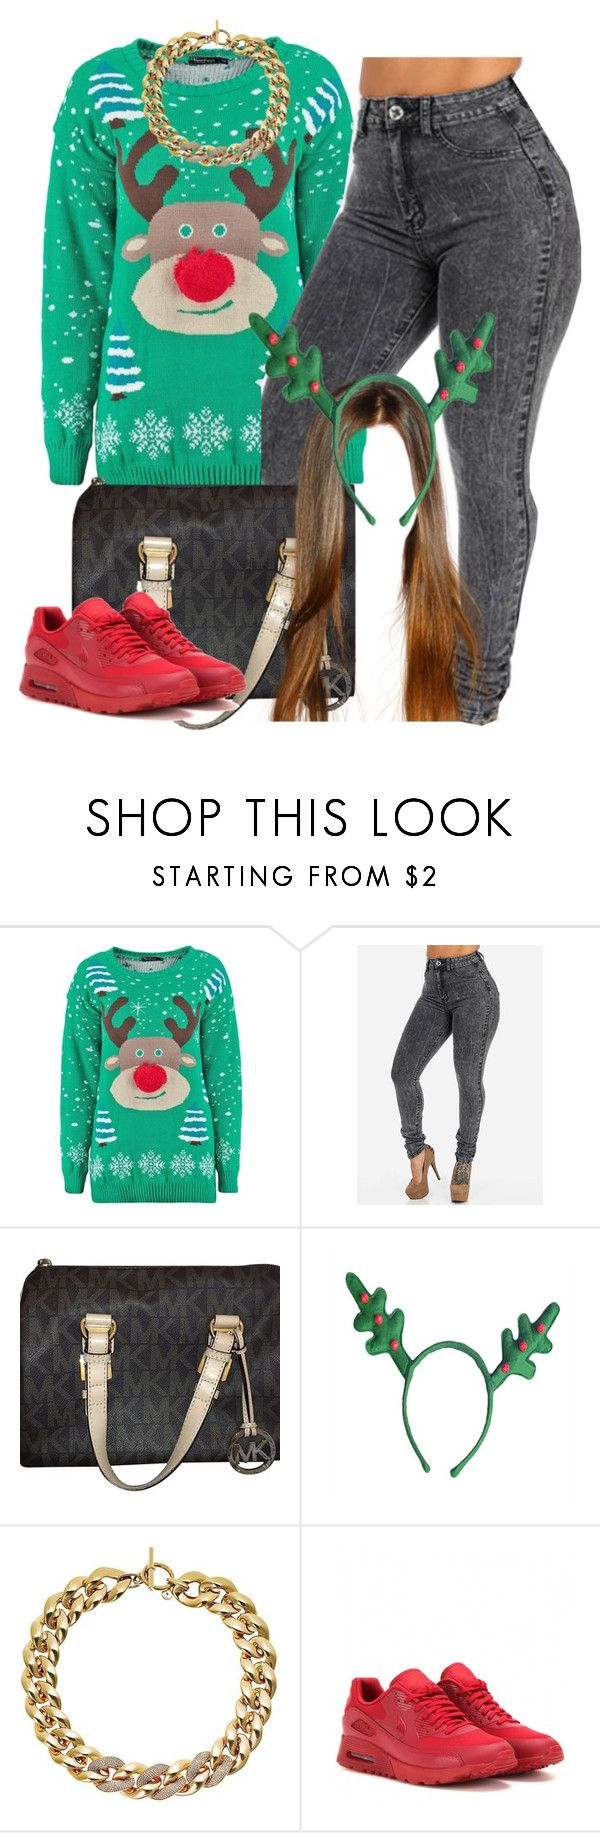 """11 days till Xmas countdown"" by trillest-queen ❤ liked on Polyvore featuring Michael Kors and NIKE"